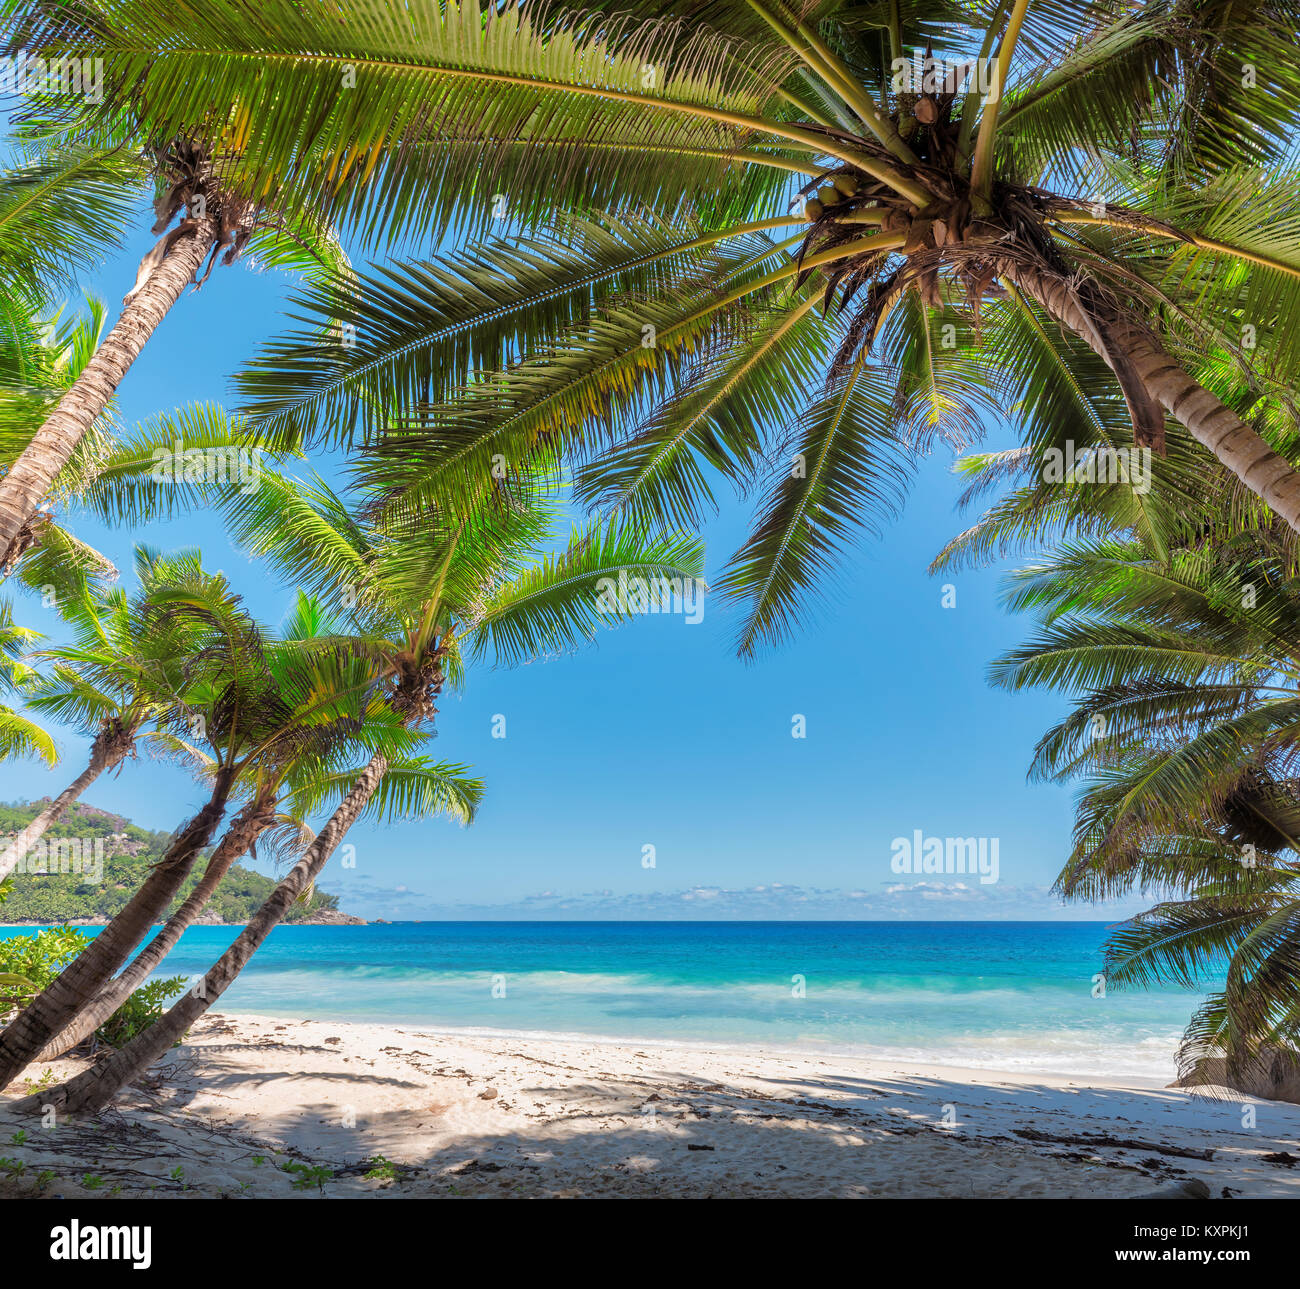 Coconut Palm trees on tropical island. - Stock Image